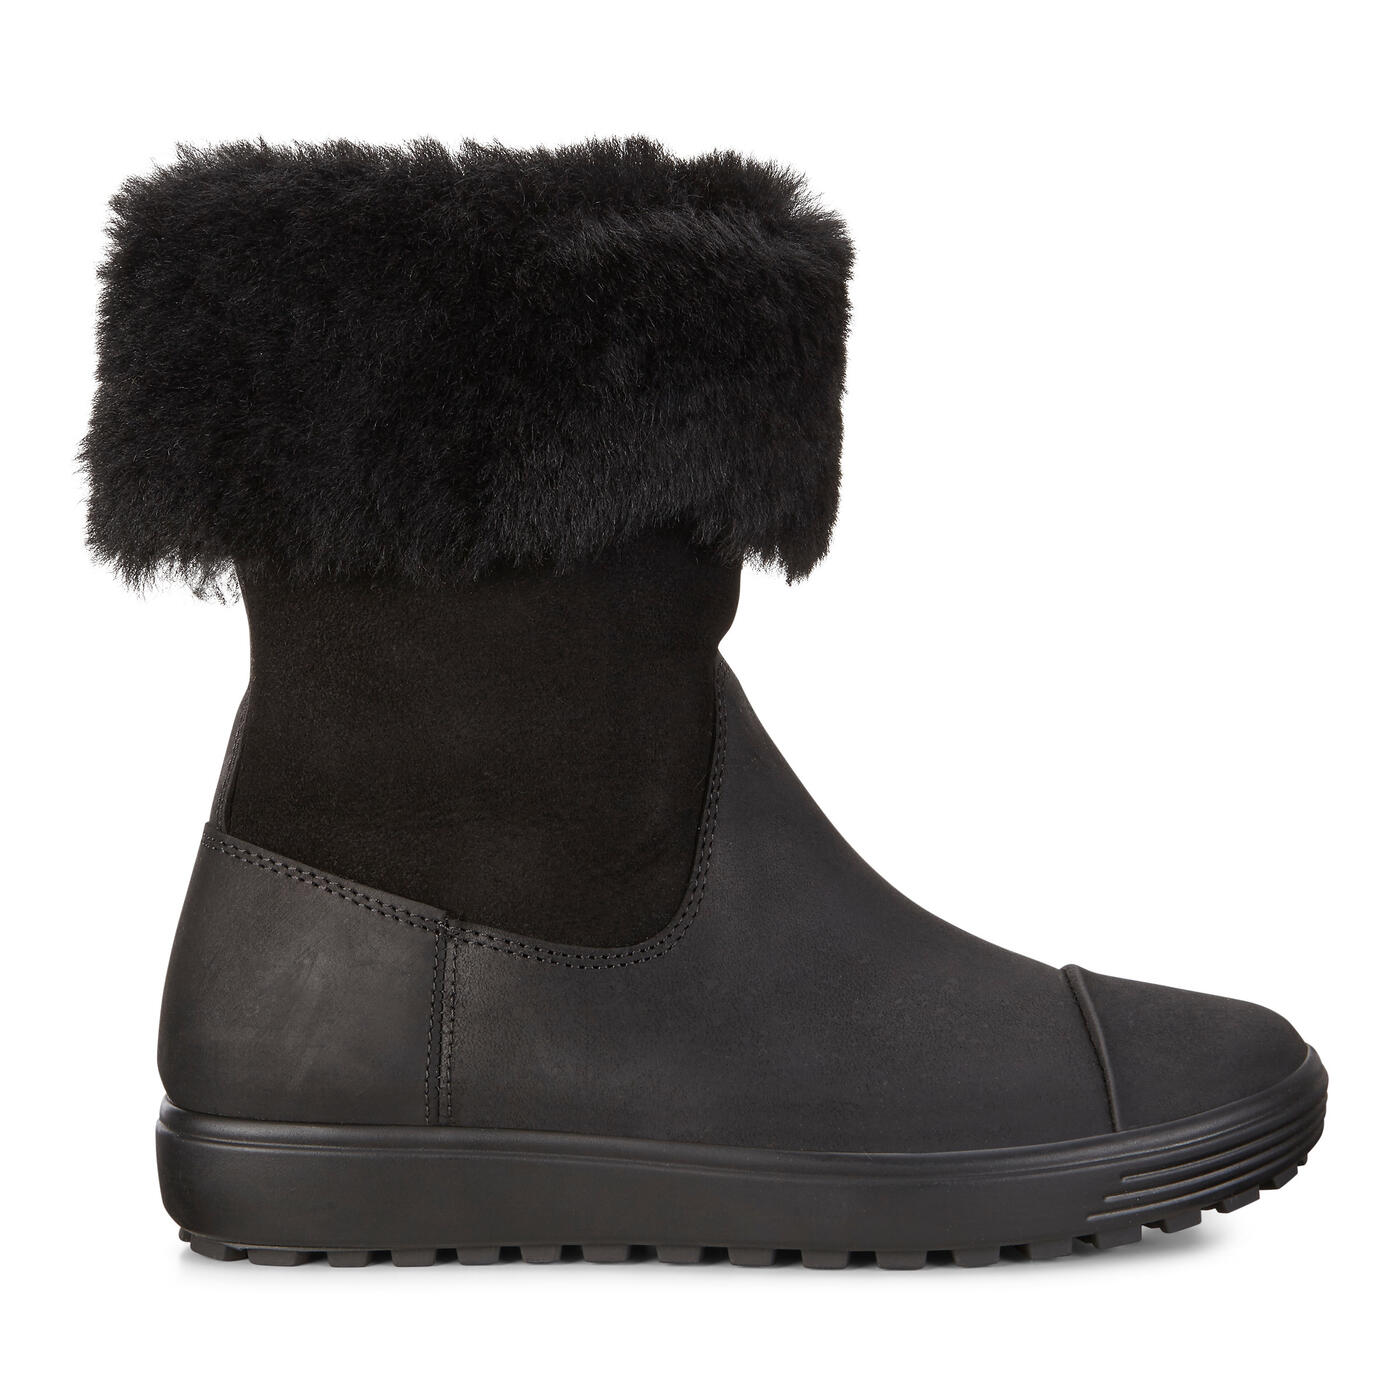 ECCO SOFT7 TRED Womens Mooton Boot